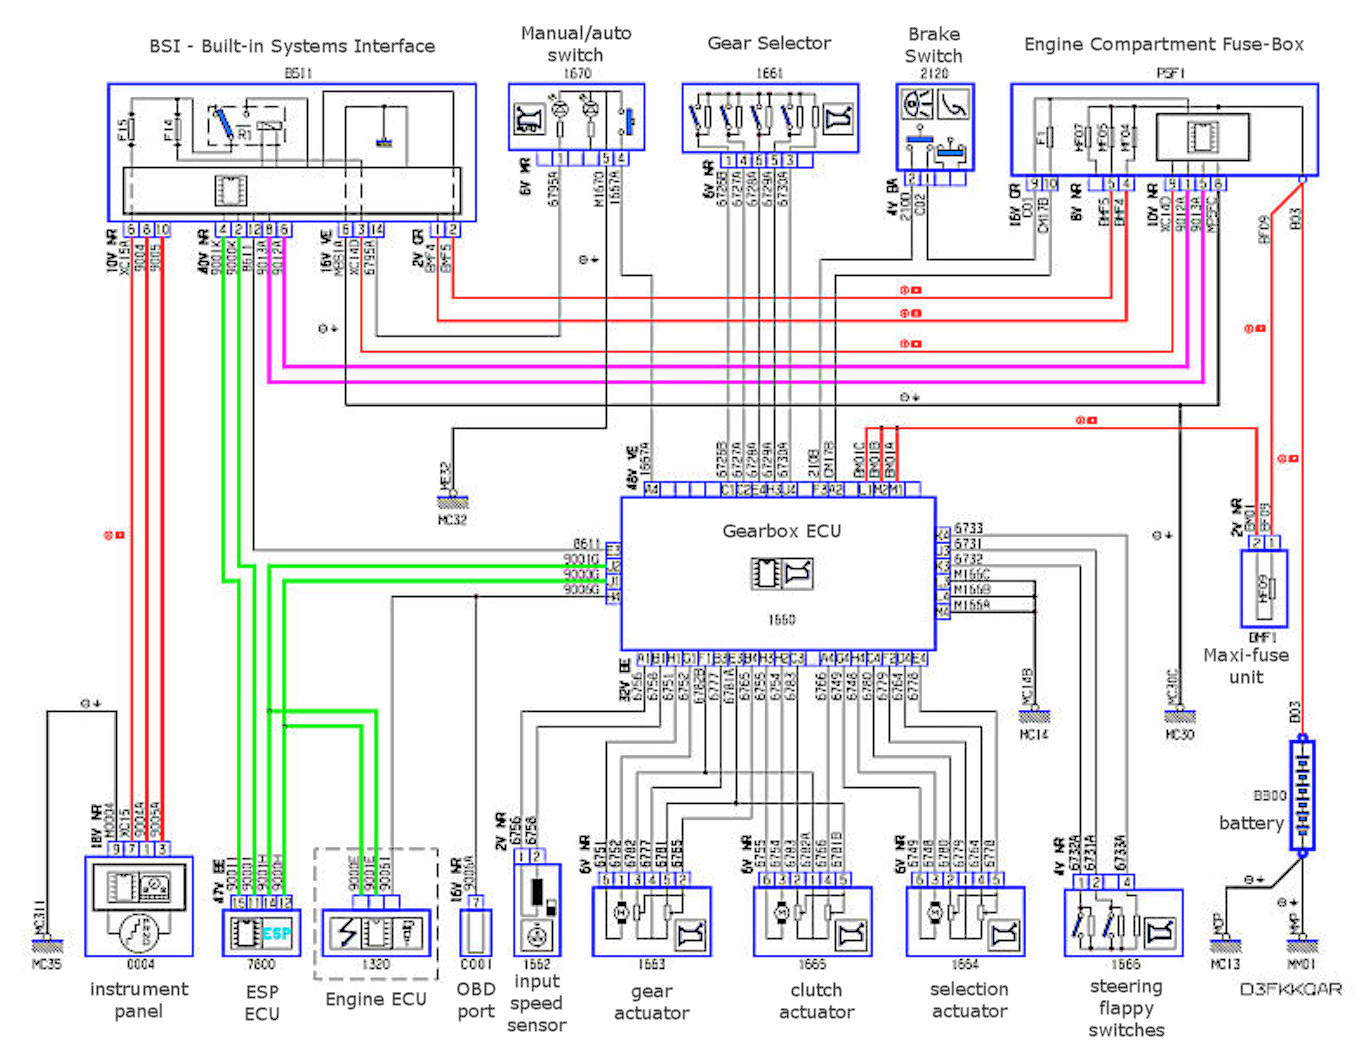 Peugeot 307 Electrical Wiring Diagram | Wiring Diagram Liries on peugeot 505 wiring diagram, peugeot 307 fuse diagram, peugeot 508 wiring diagram, peugeot 307 owner's manual,